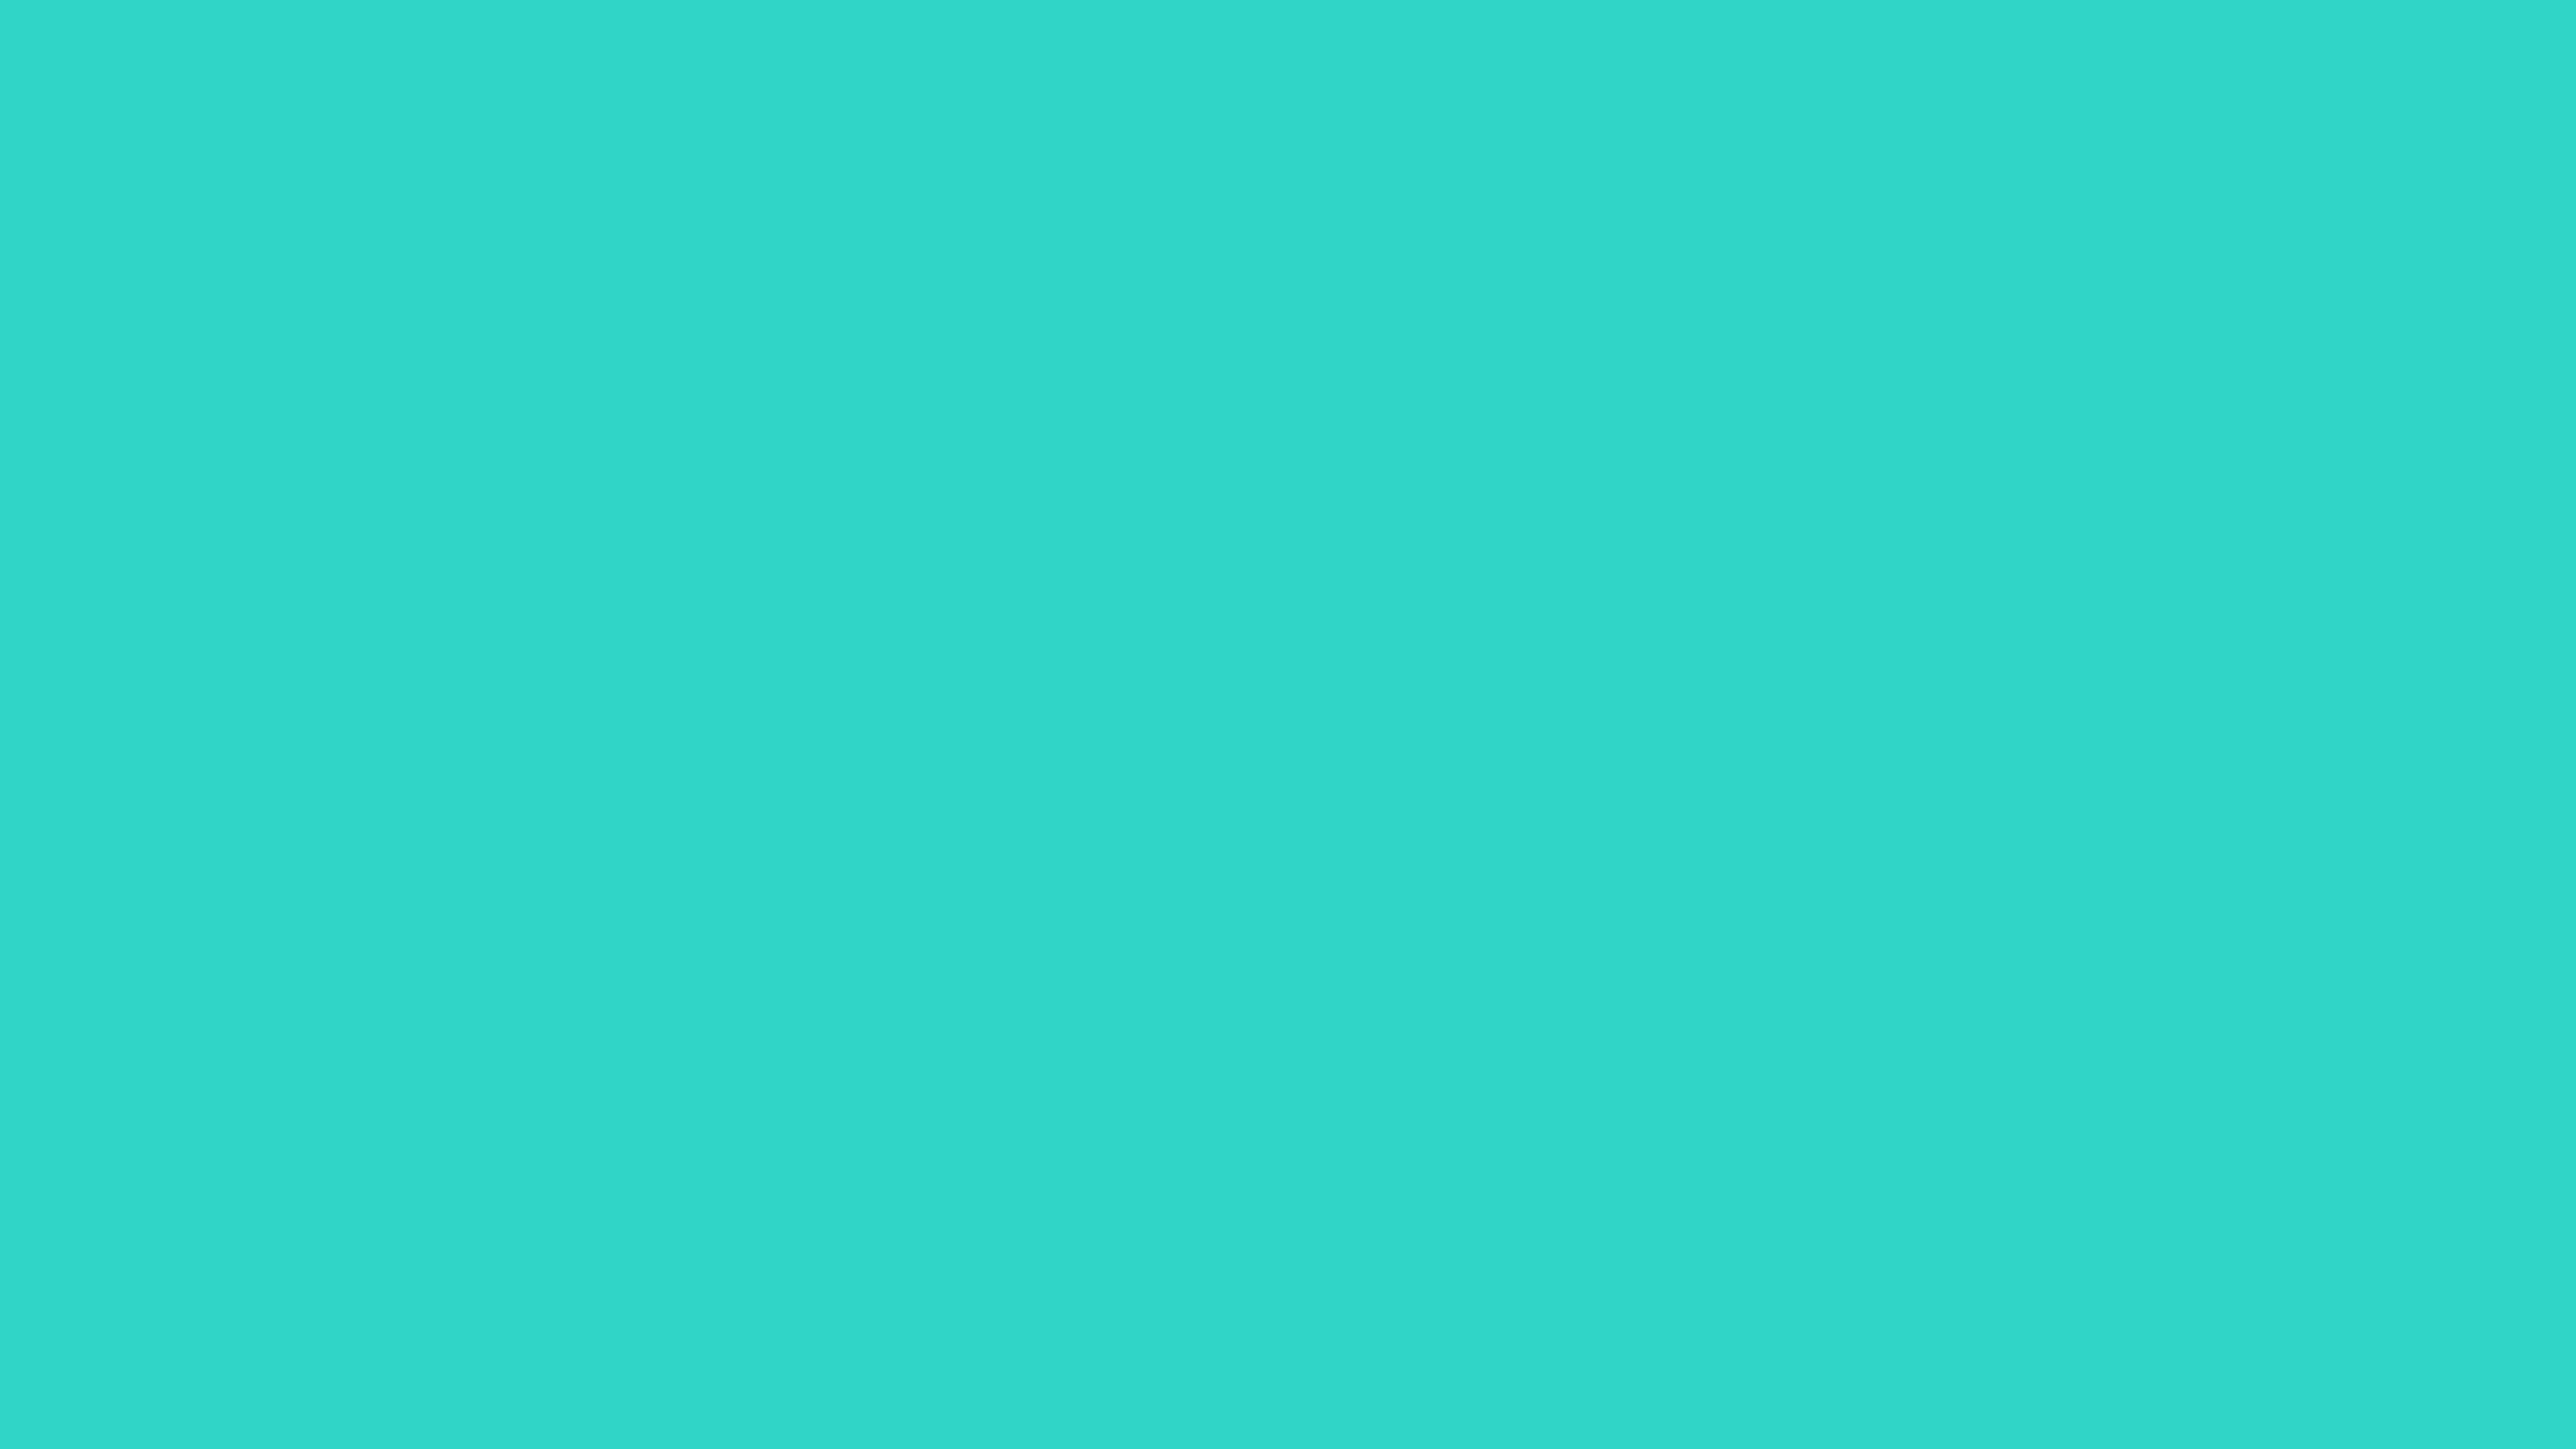 7680x4320 Turquoise Solid Color Background